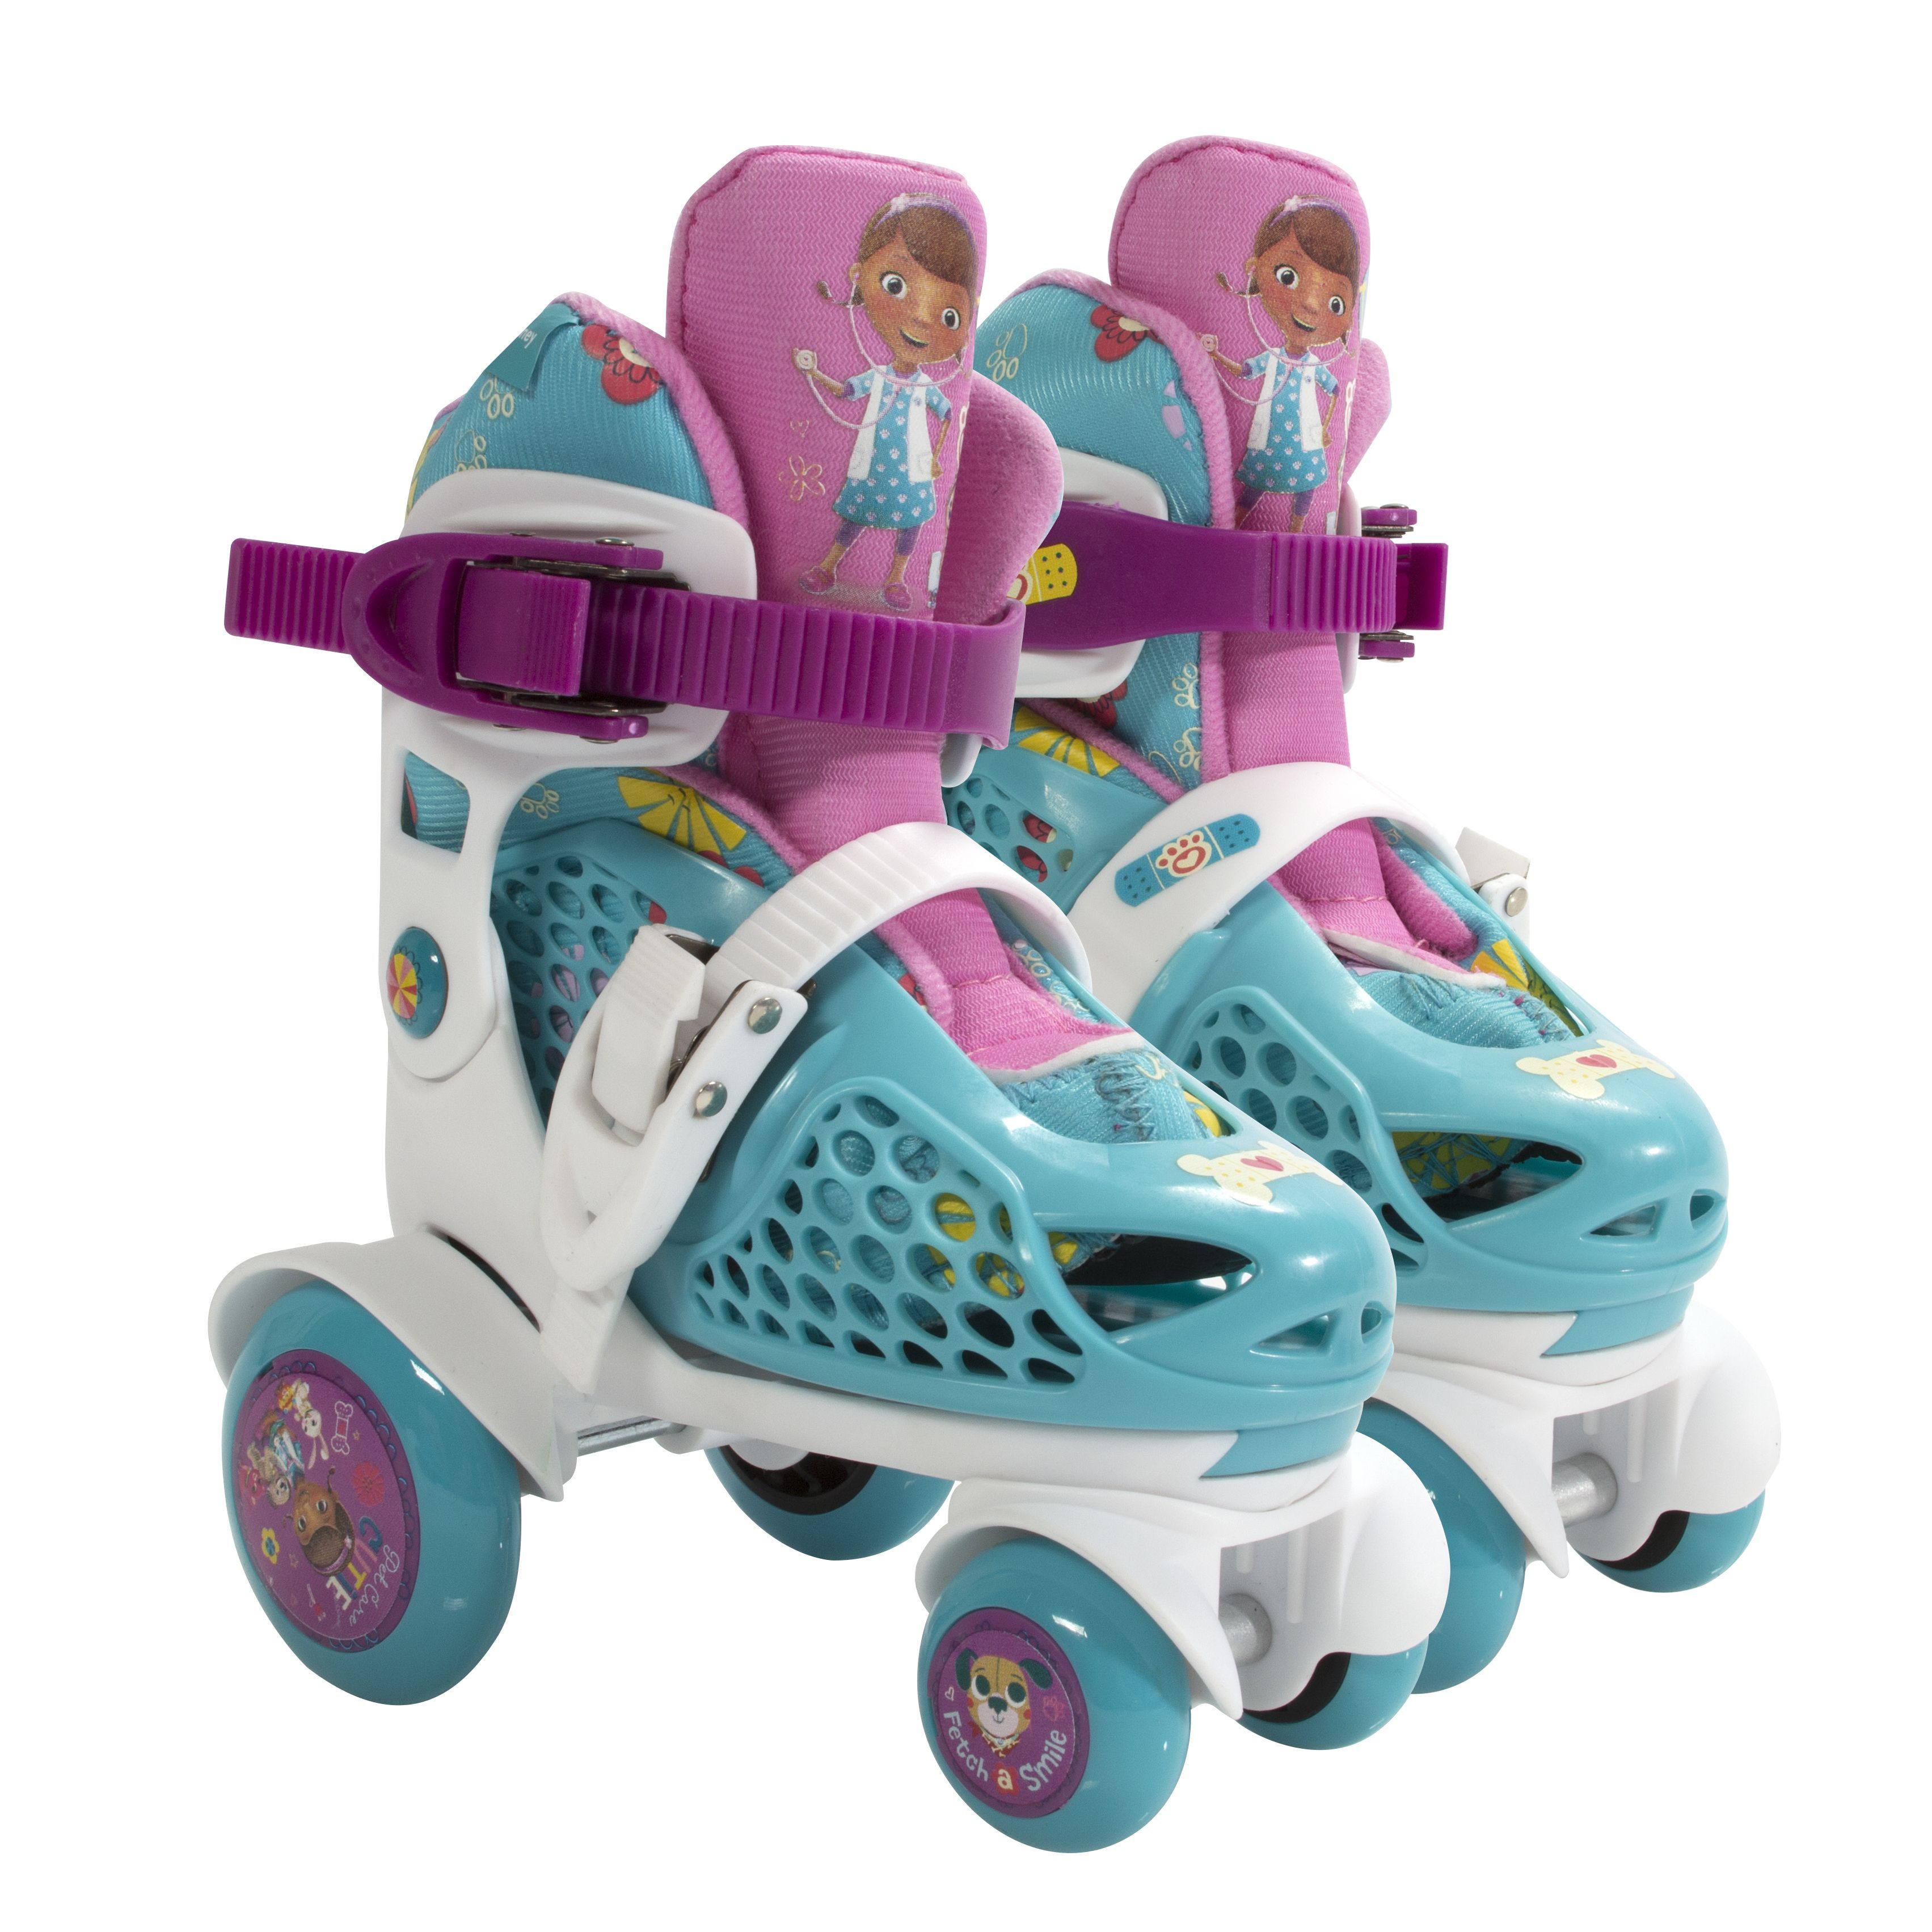 Bravo Playwheels Disney Doc McStuffins Junior Size 6-9 Big Wheel Skates